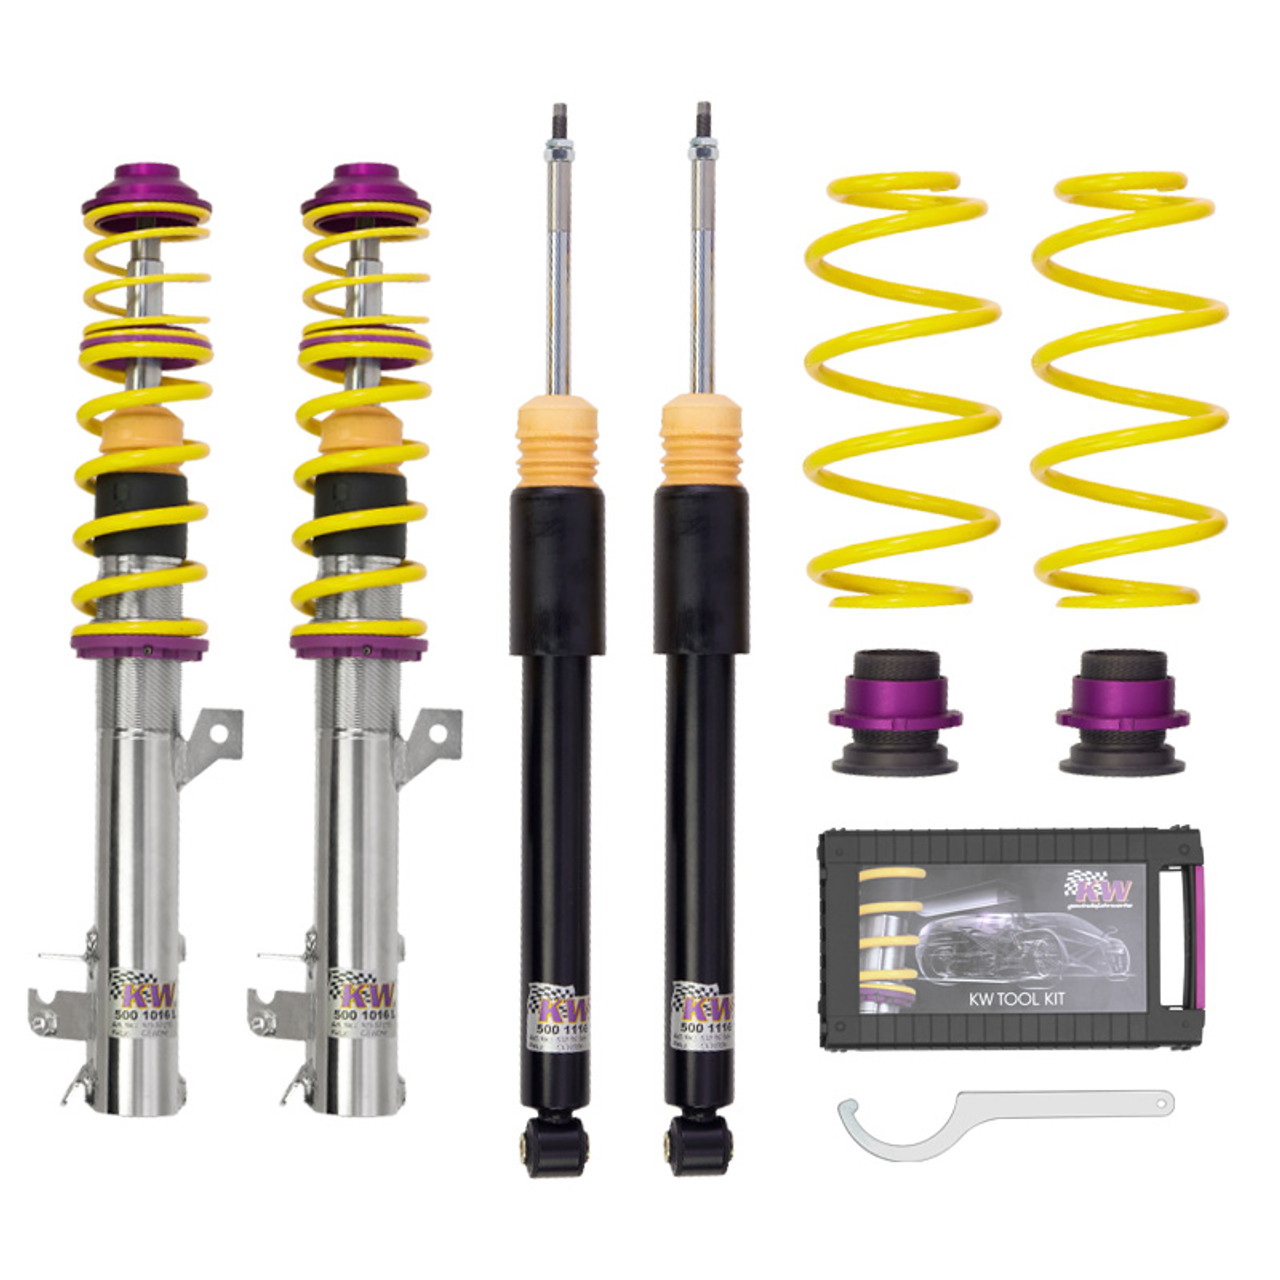 Kw Variant 1 Coilovers Volkswagen Golf Mk5 Awesome Gti Volkswagen Audi Group Specialists